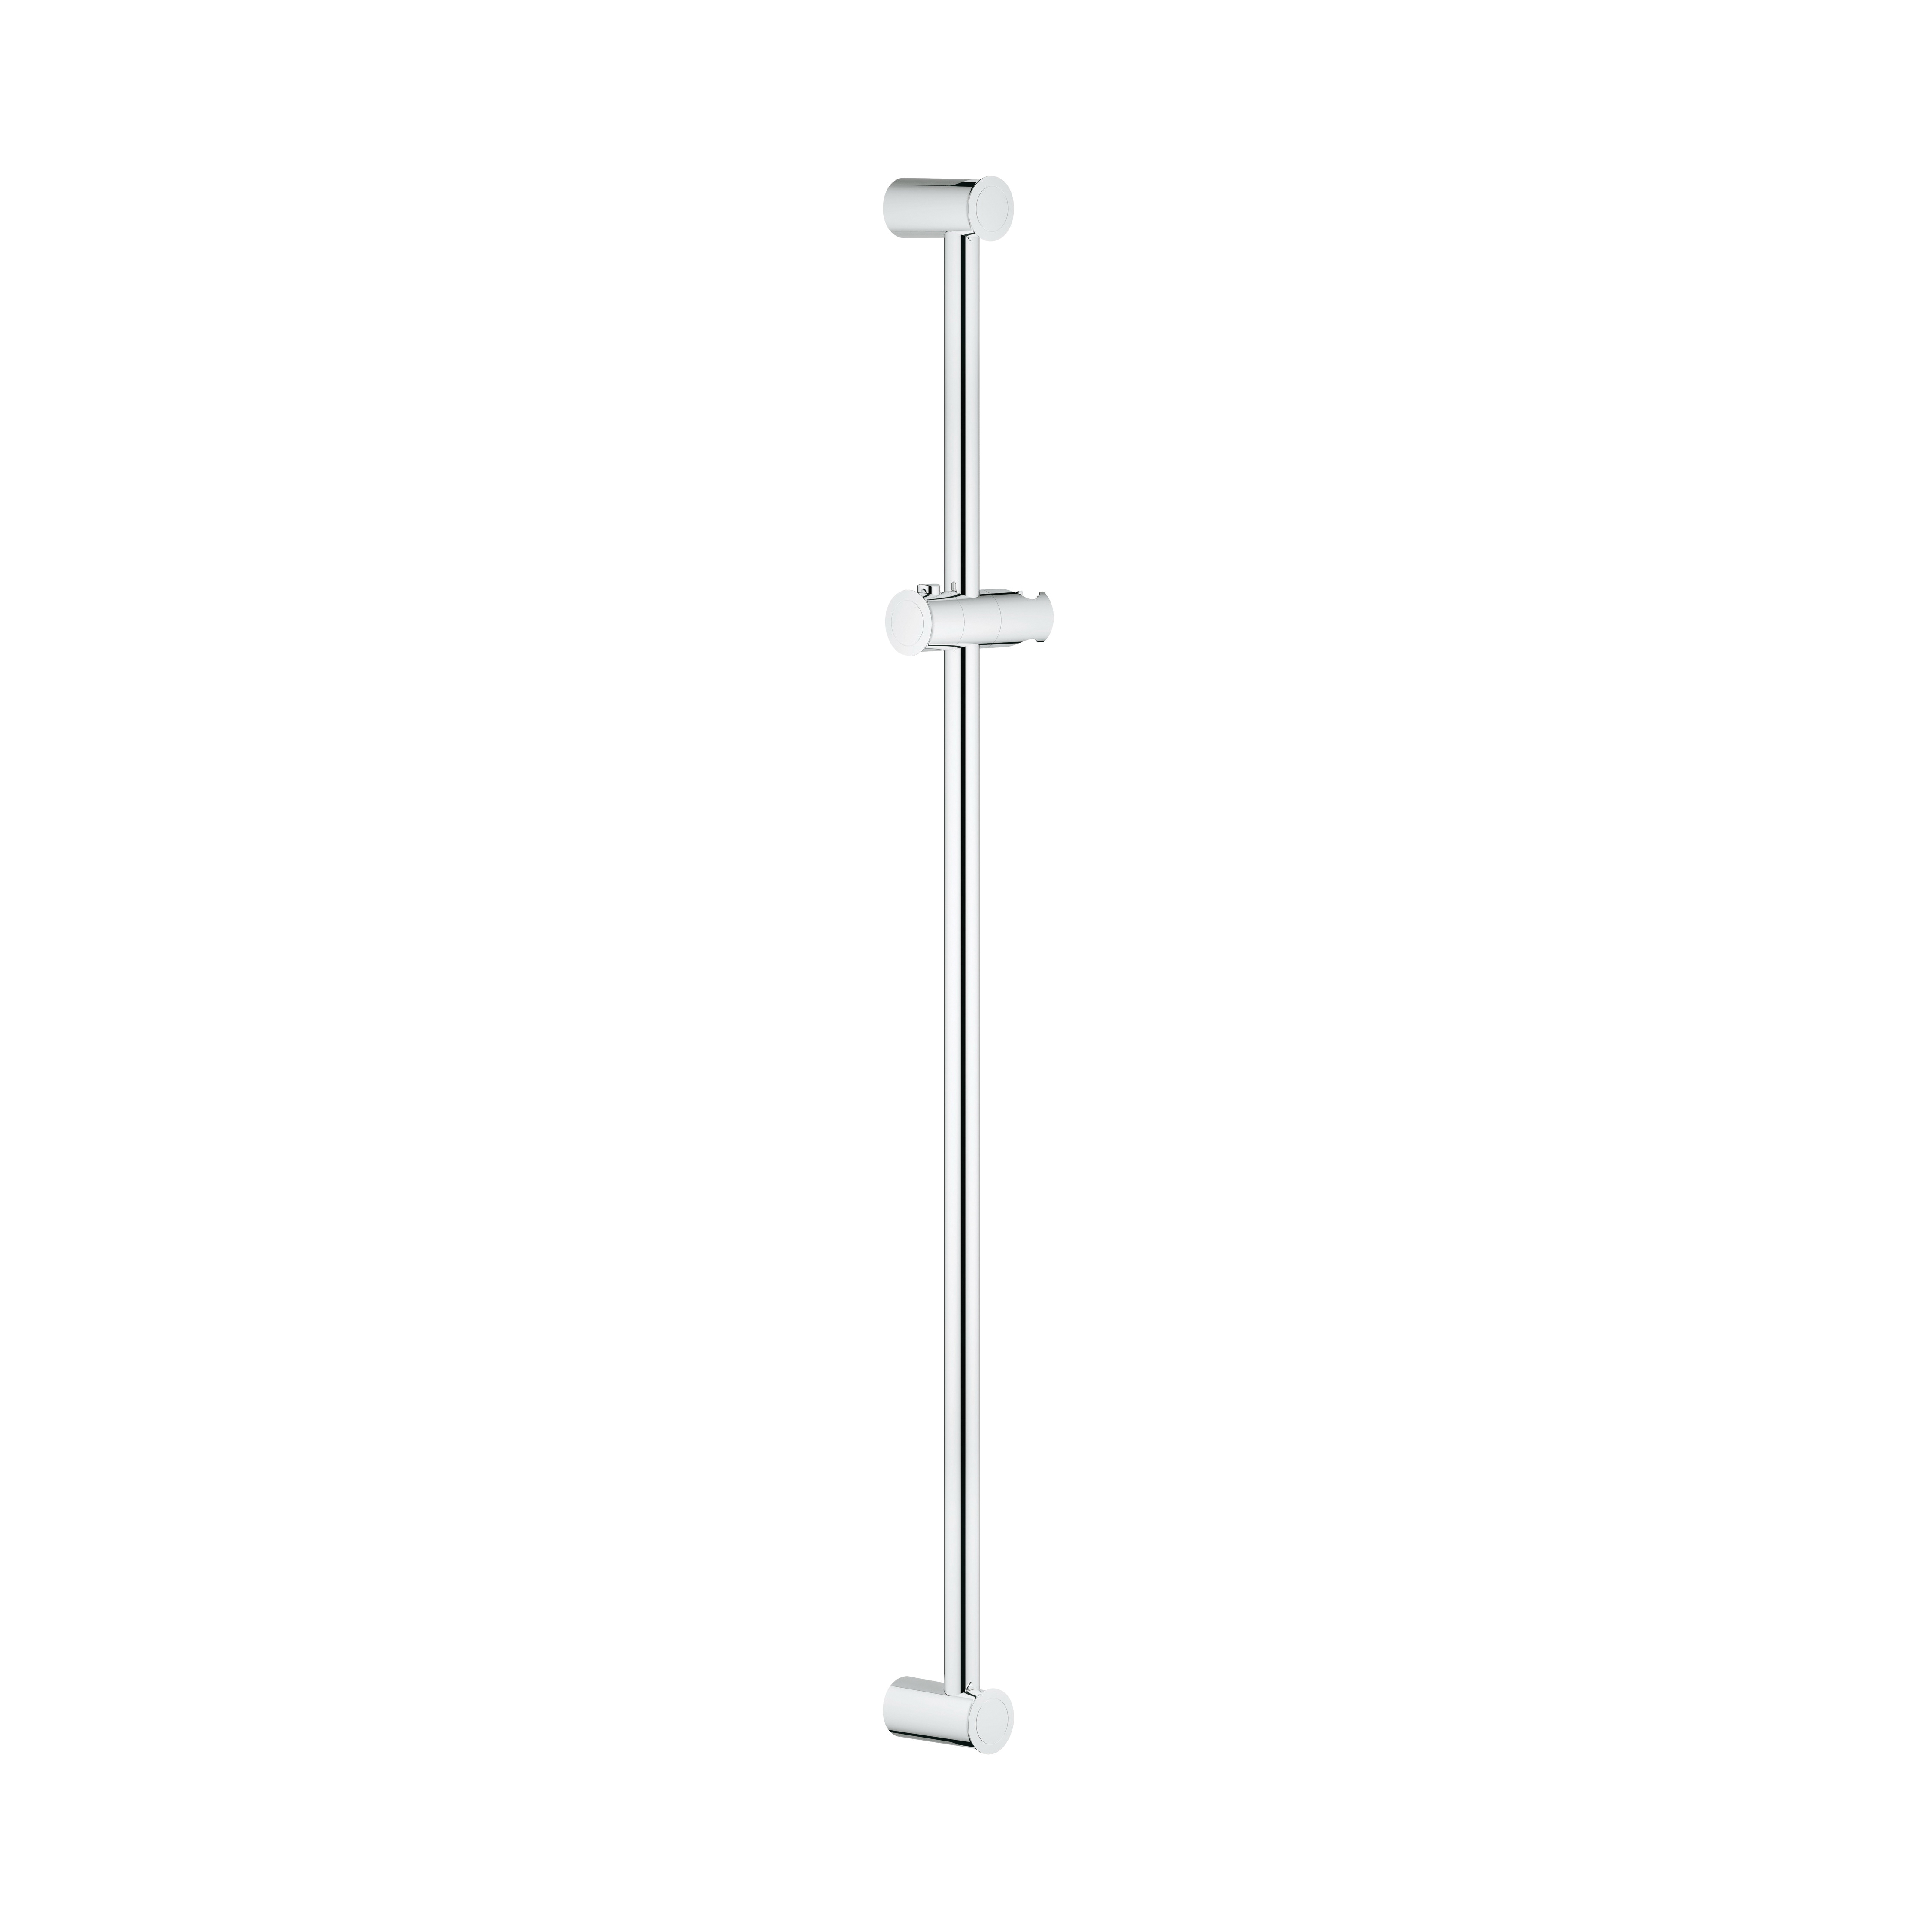 GROHE 27520000 New Tempesta® Rustic Shower Bar, 36 in, Import